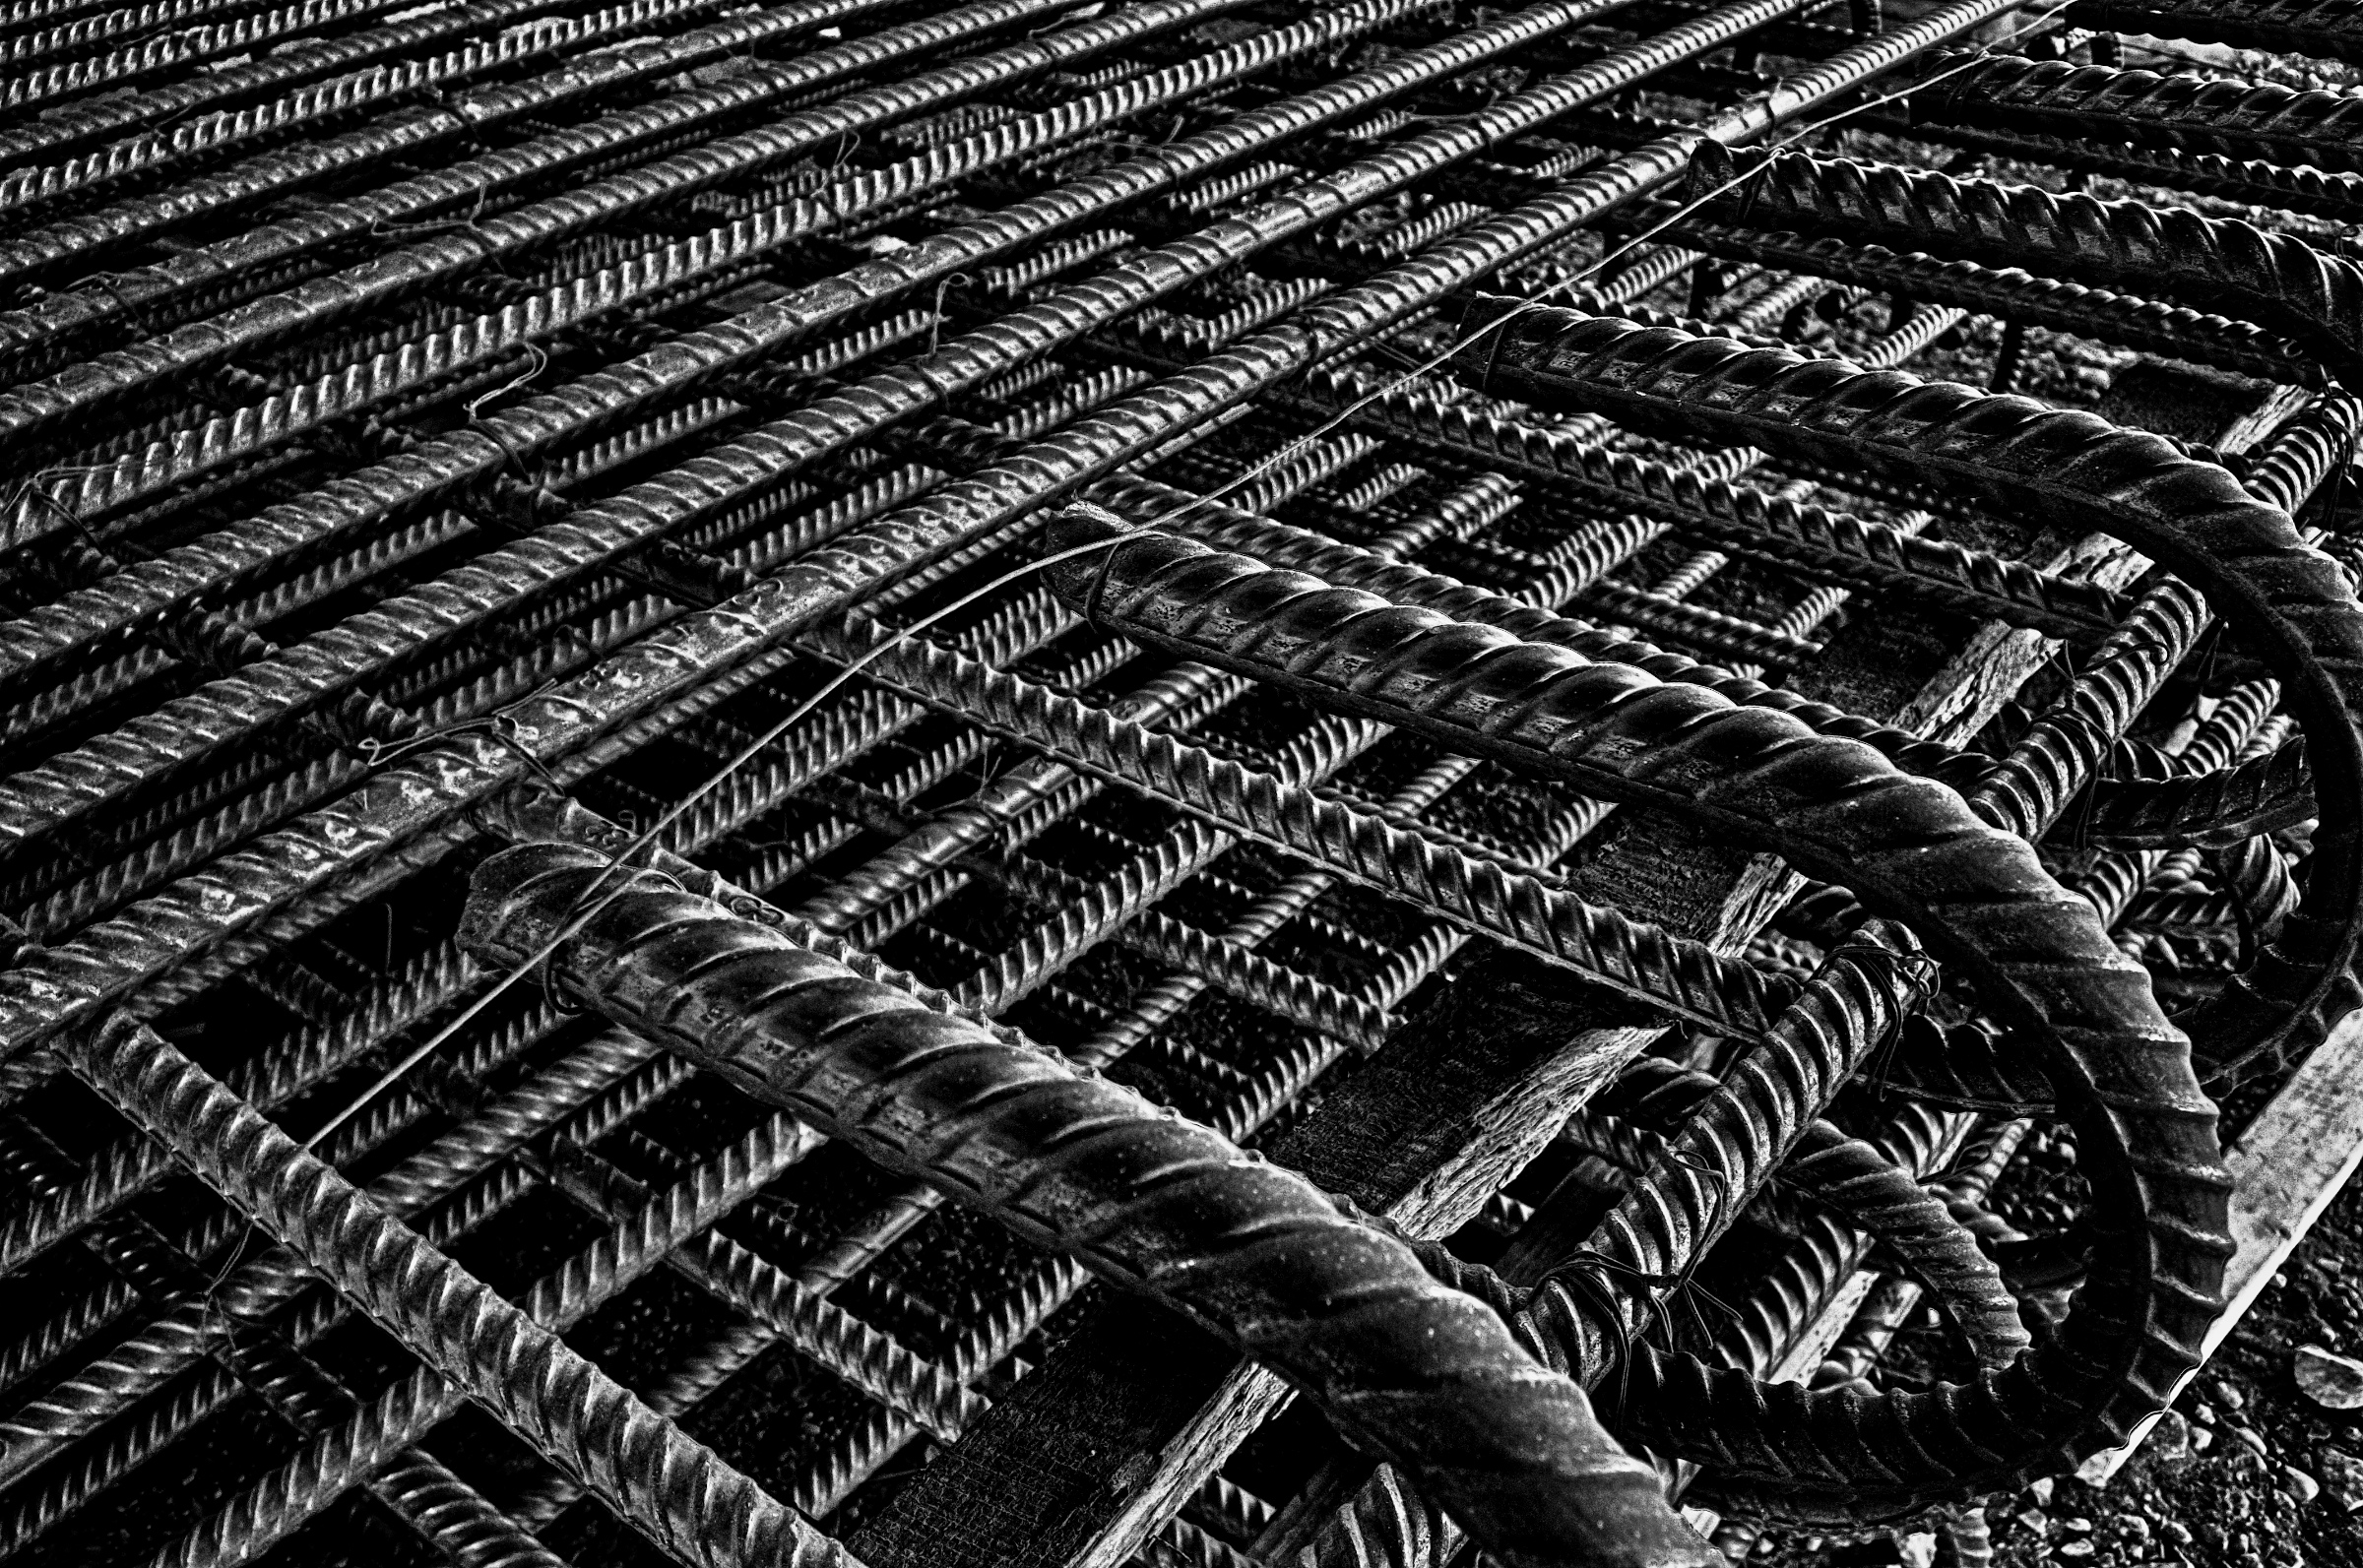 Rebar Assembly Closeup